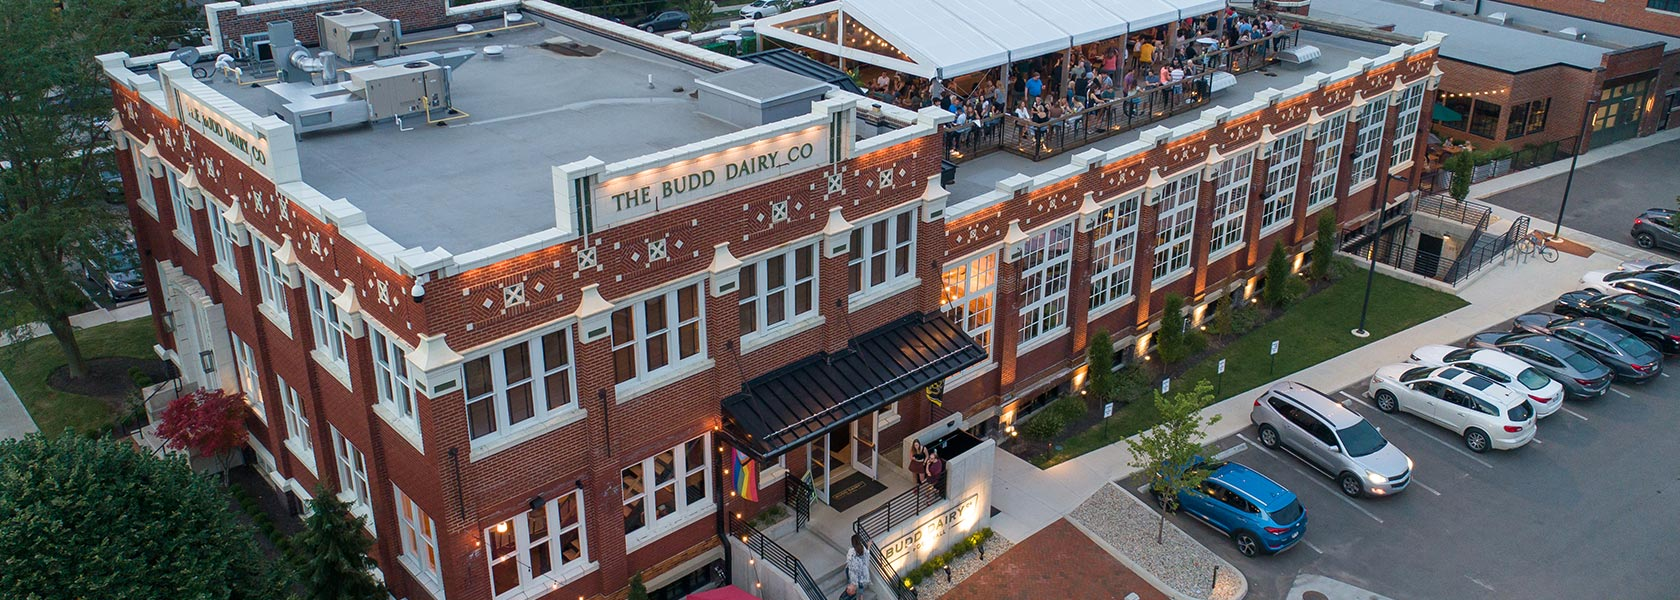 Aerial view of Budd Dairy Food Hall with rooftop gathering.